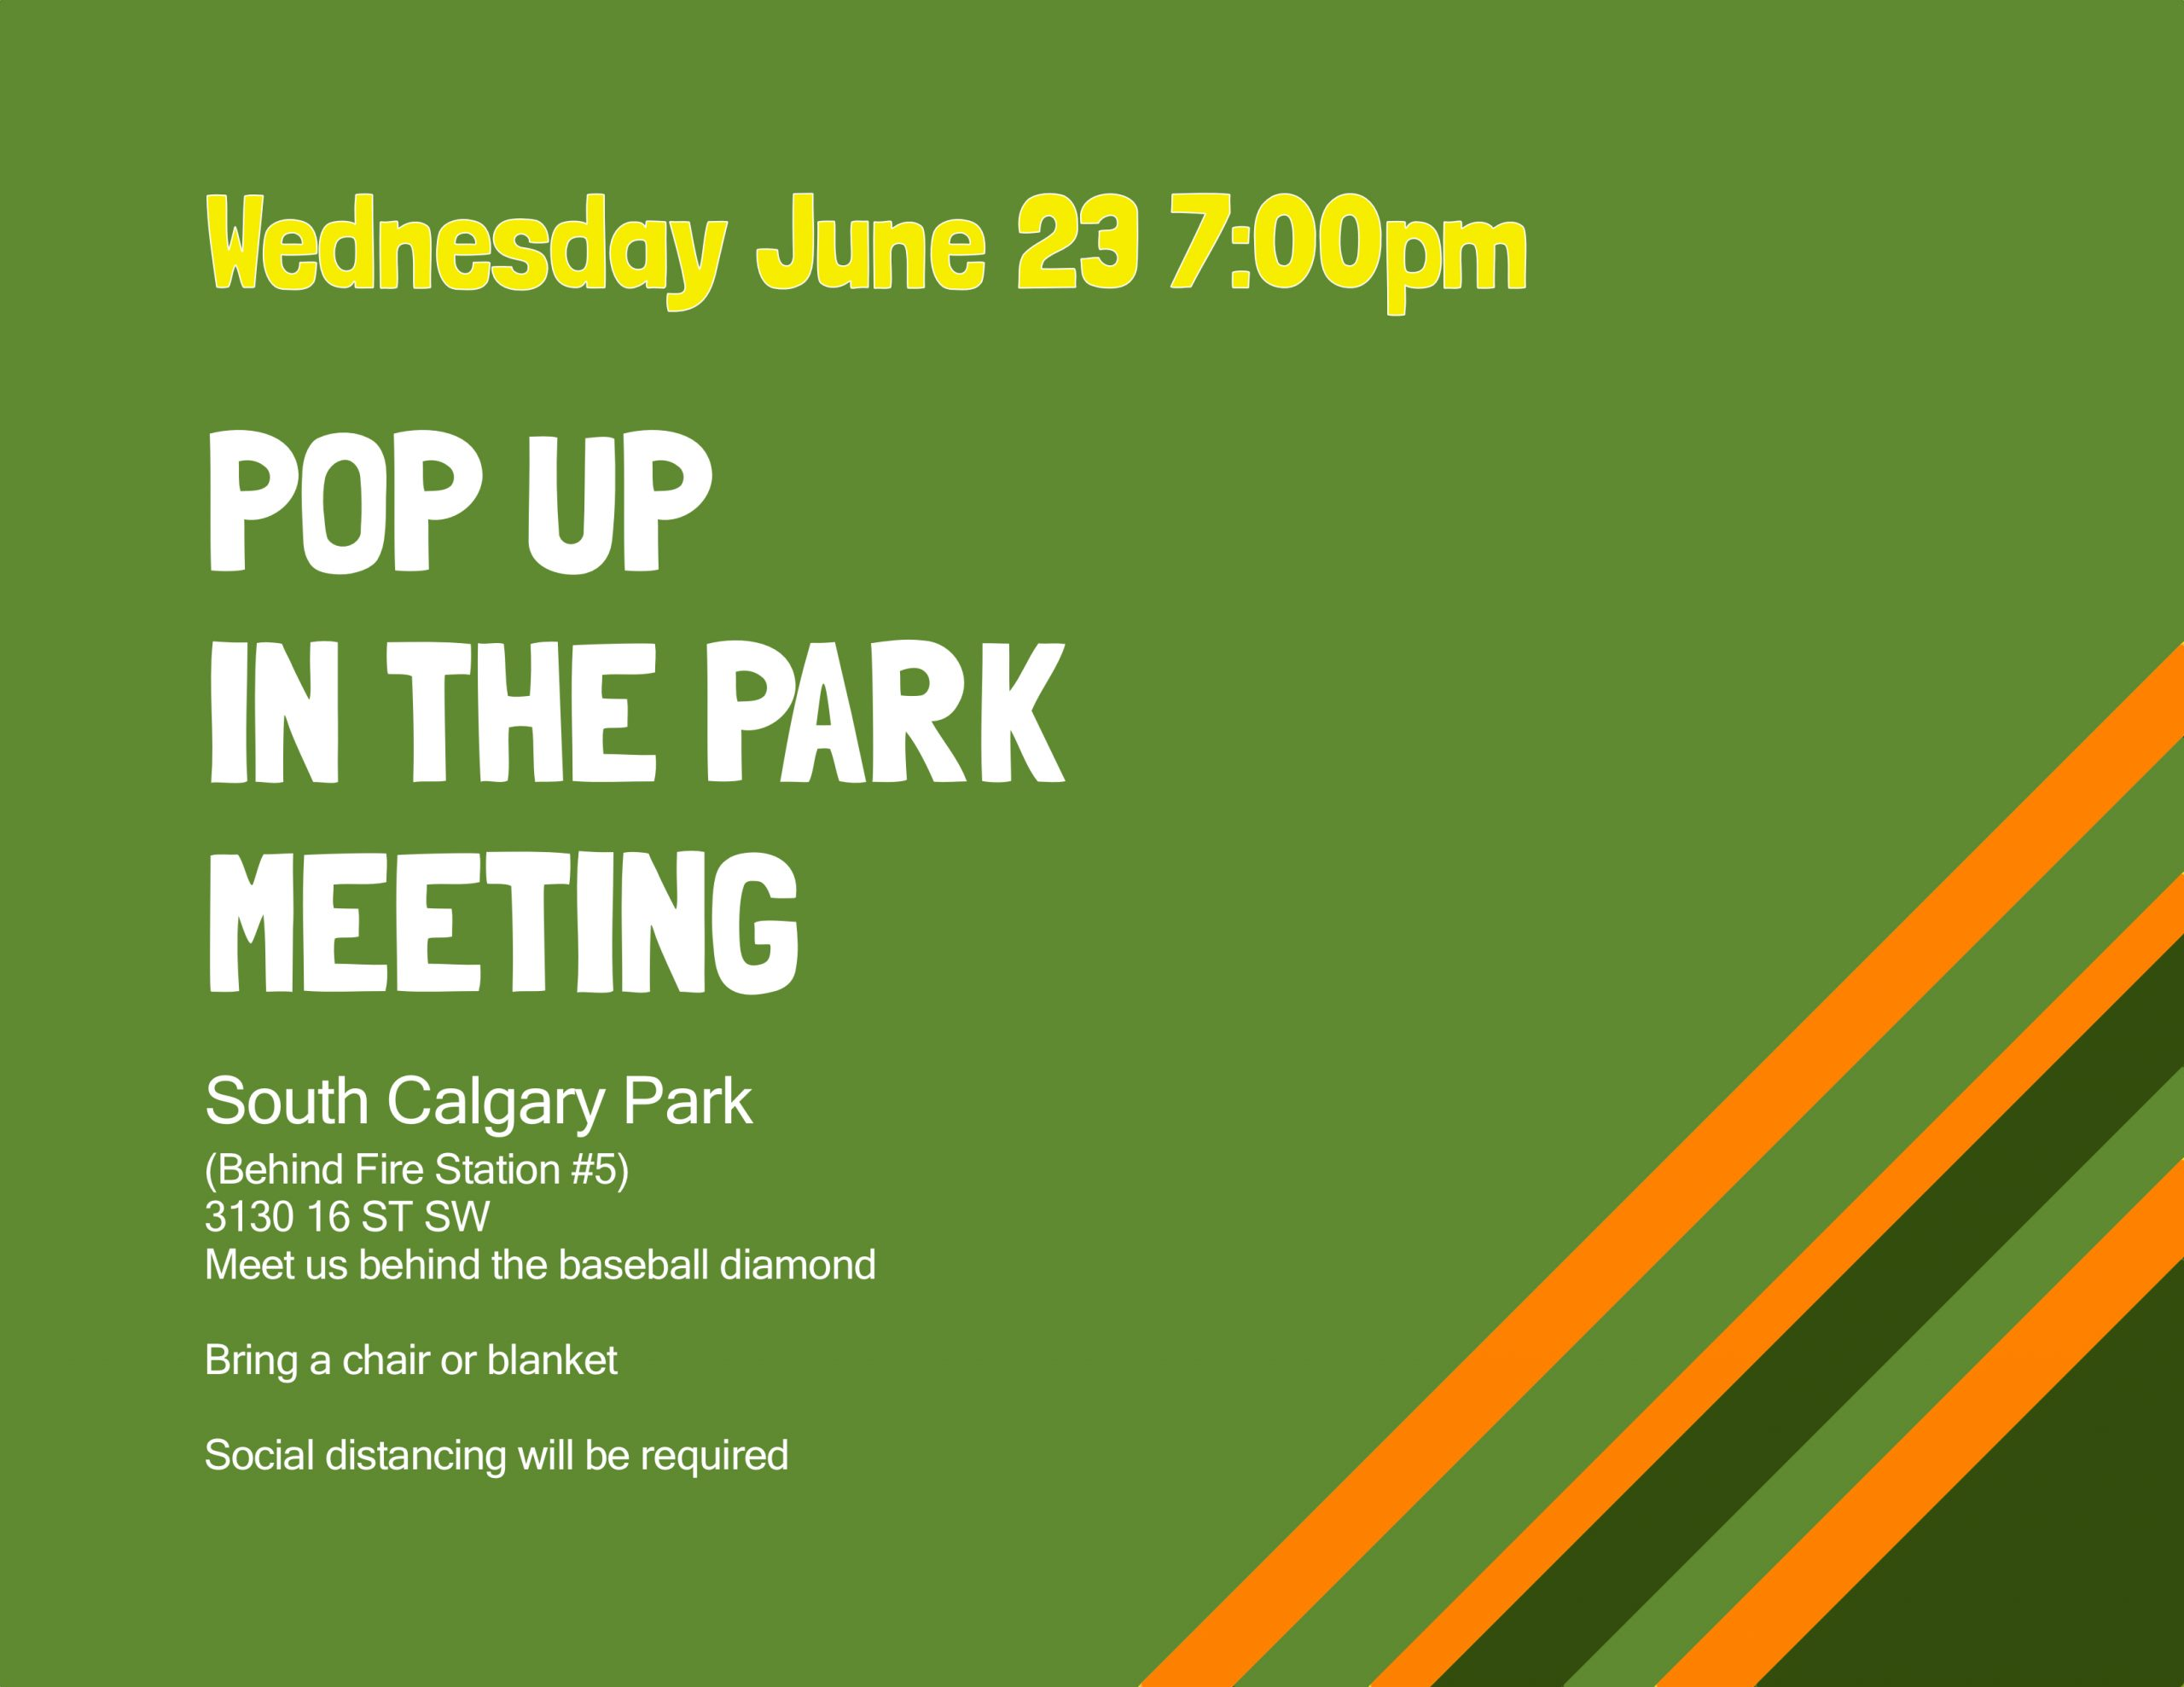 Pop Up In The Park Meeting @ South Calgary Park